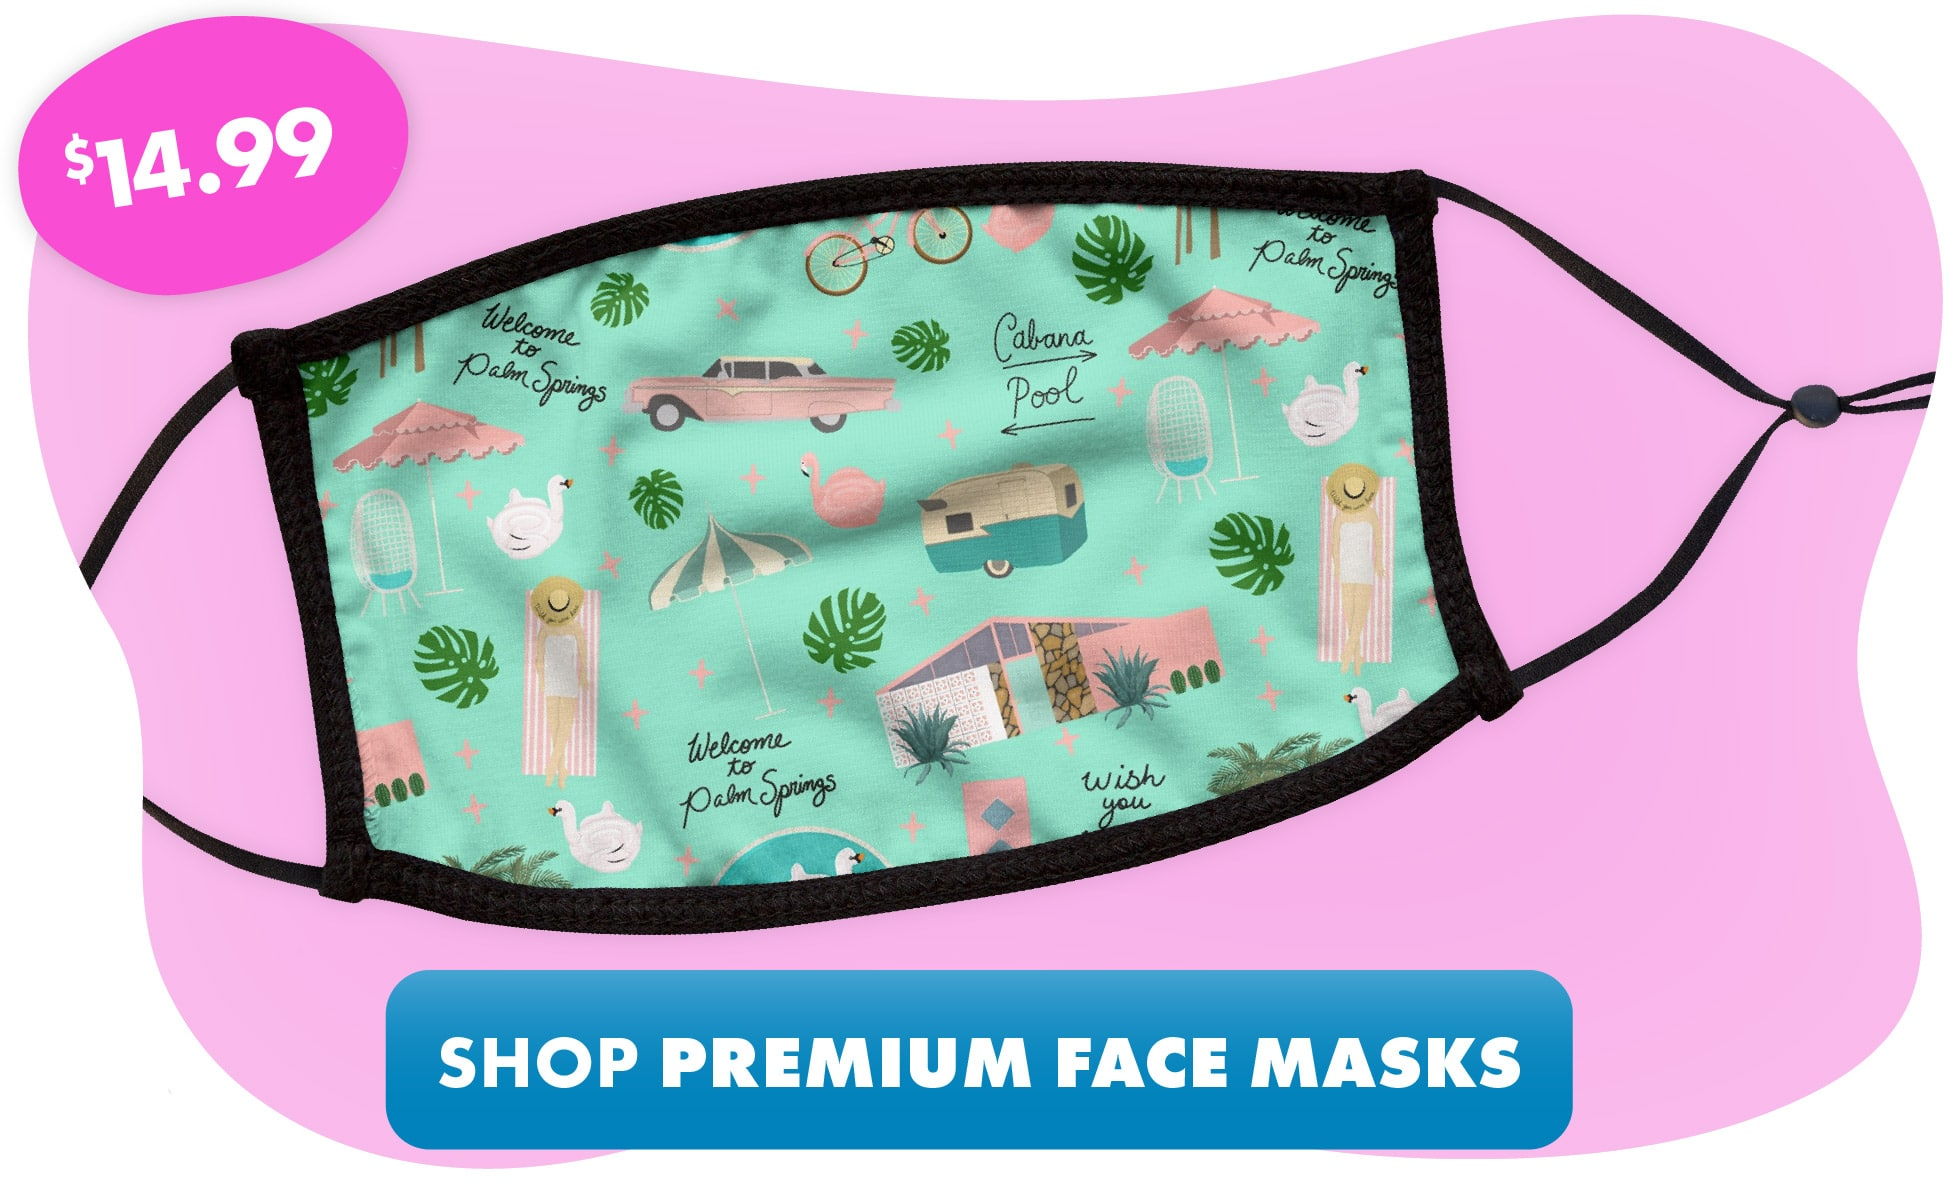 Premium Face Masks